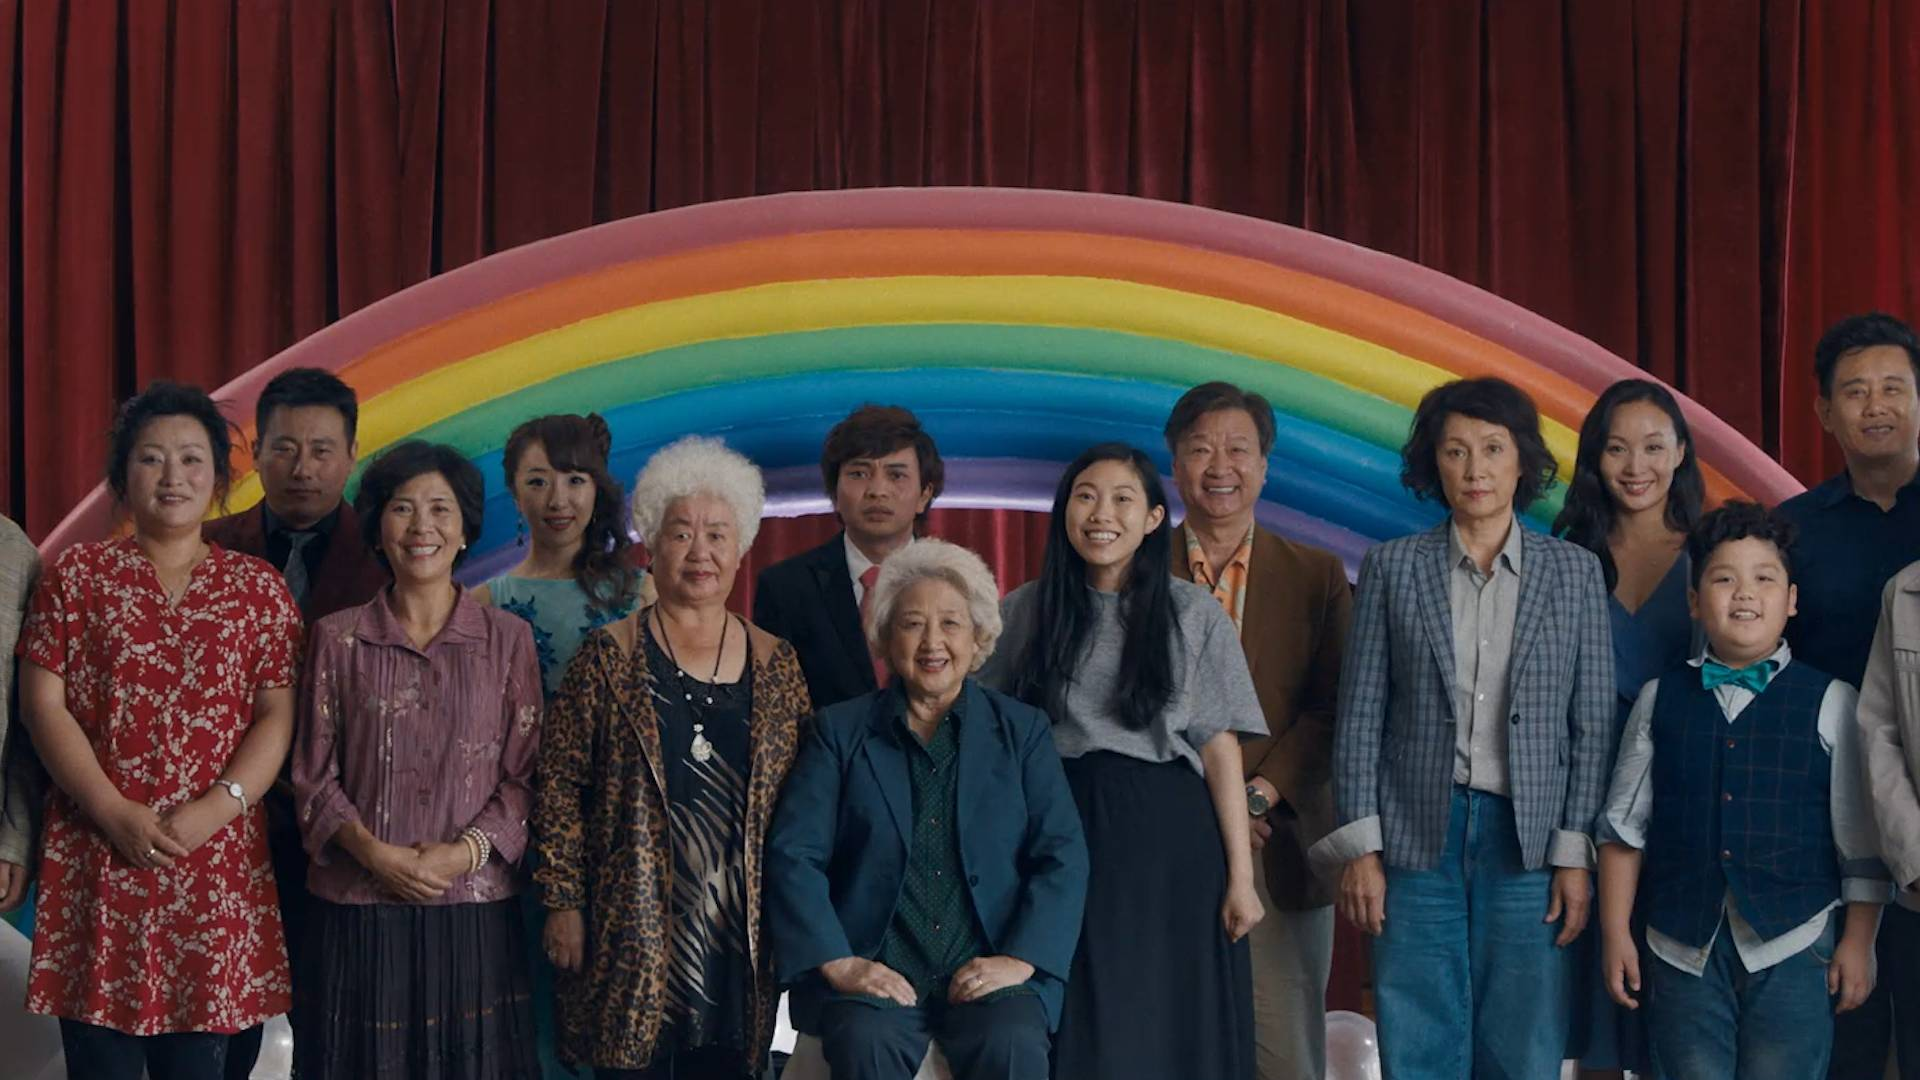 'The Farewell' director Lulu Wang surprises moviegoer watching film alone in theater